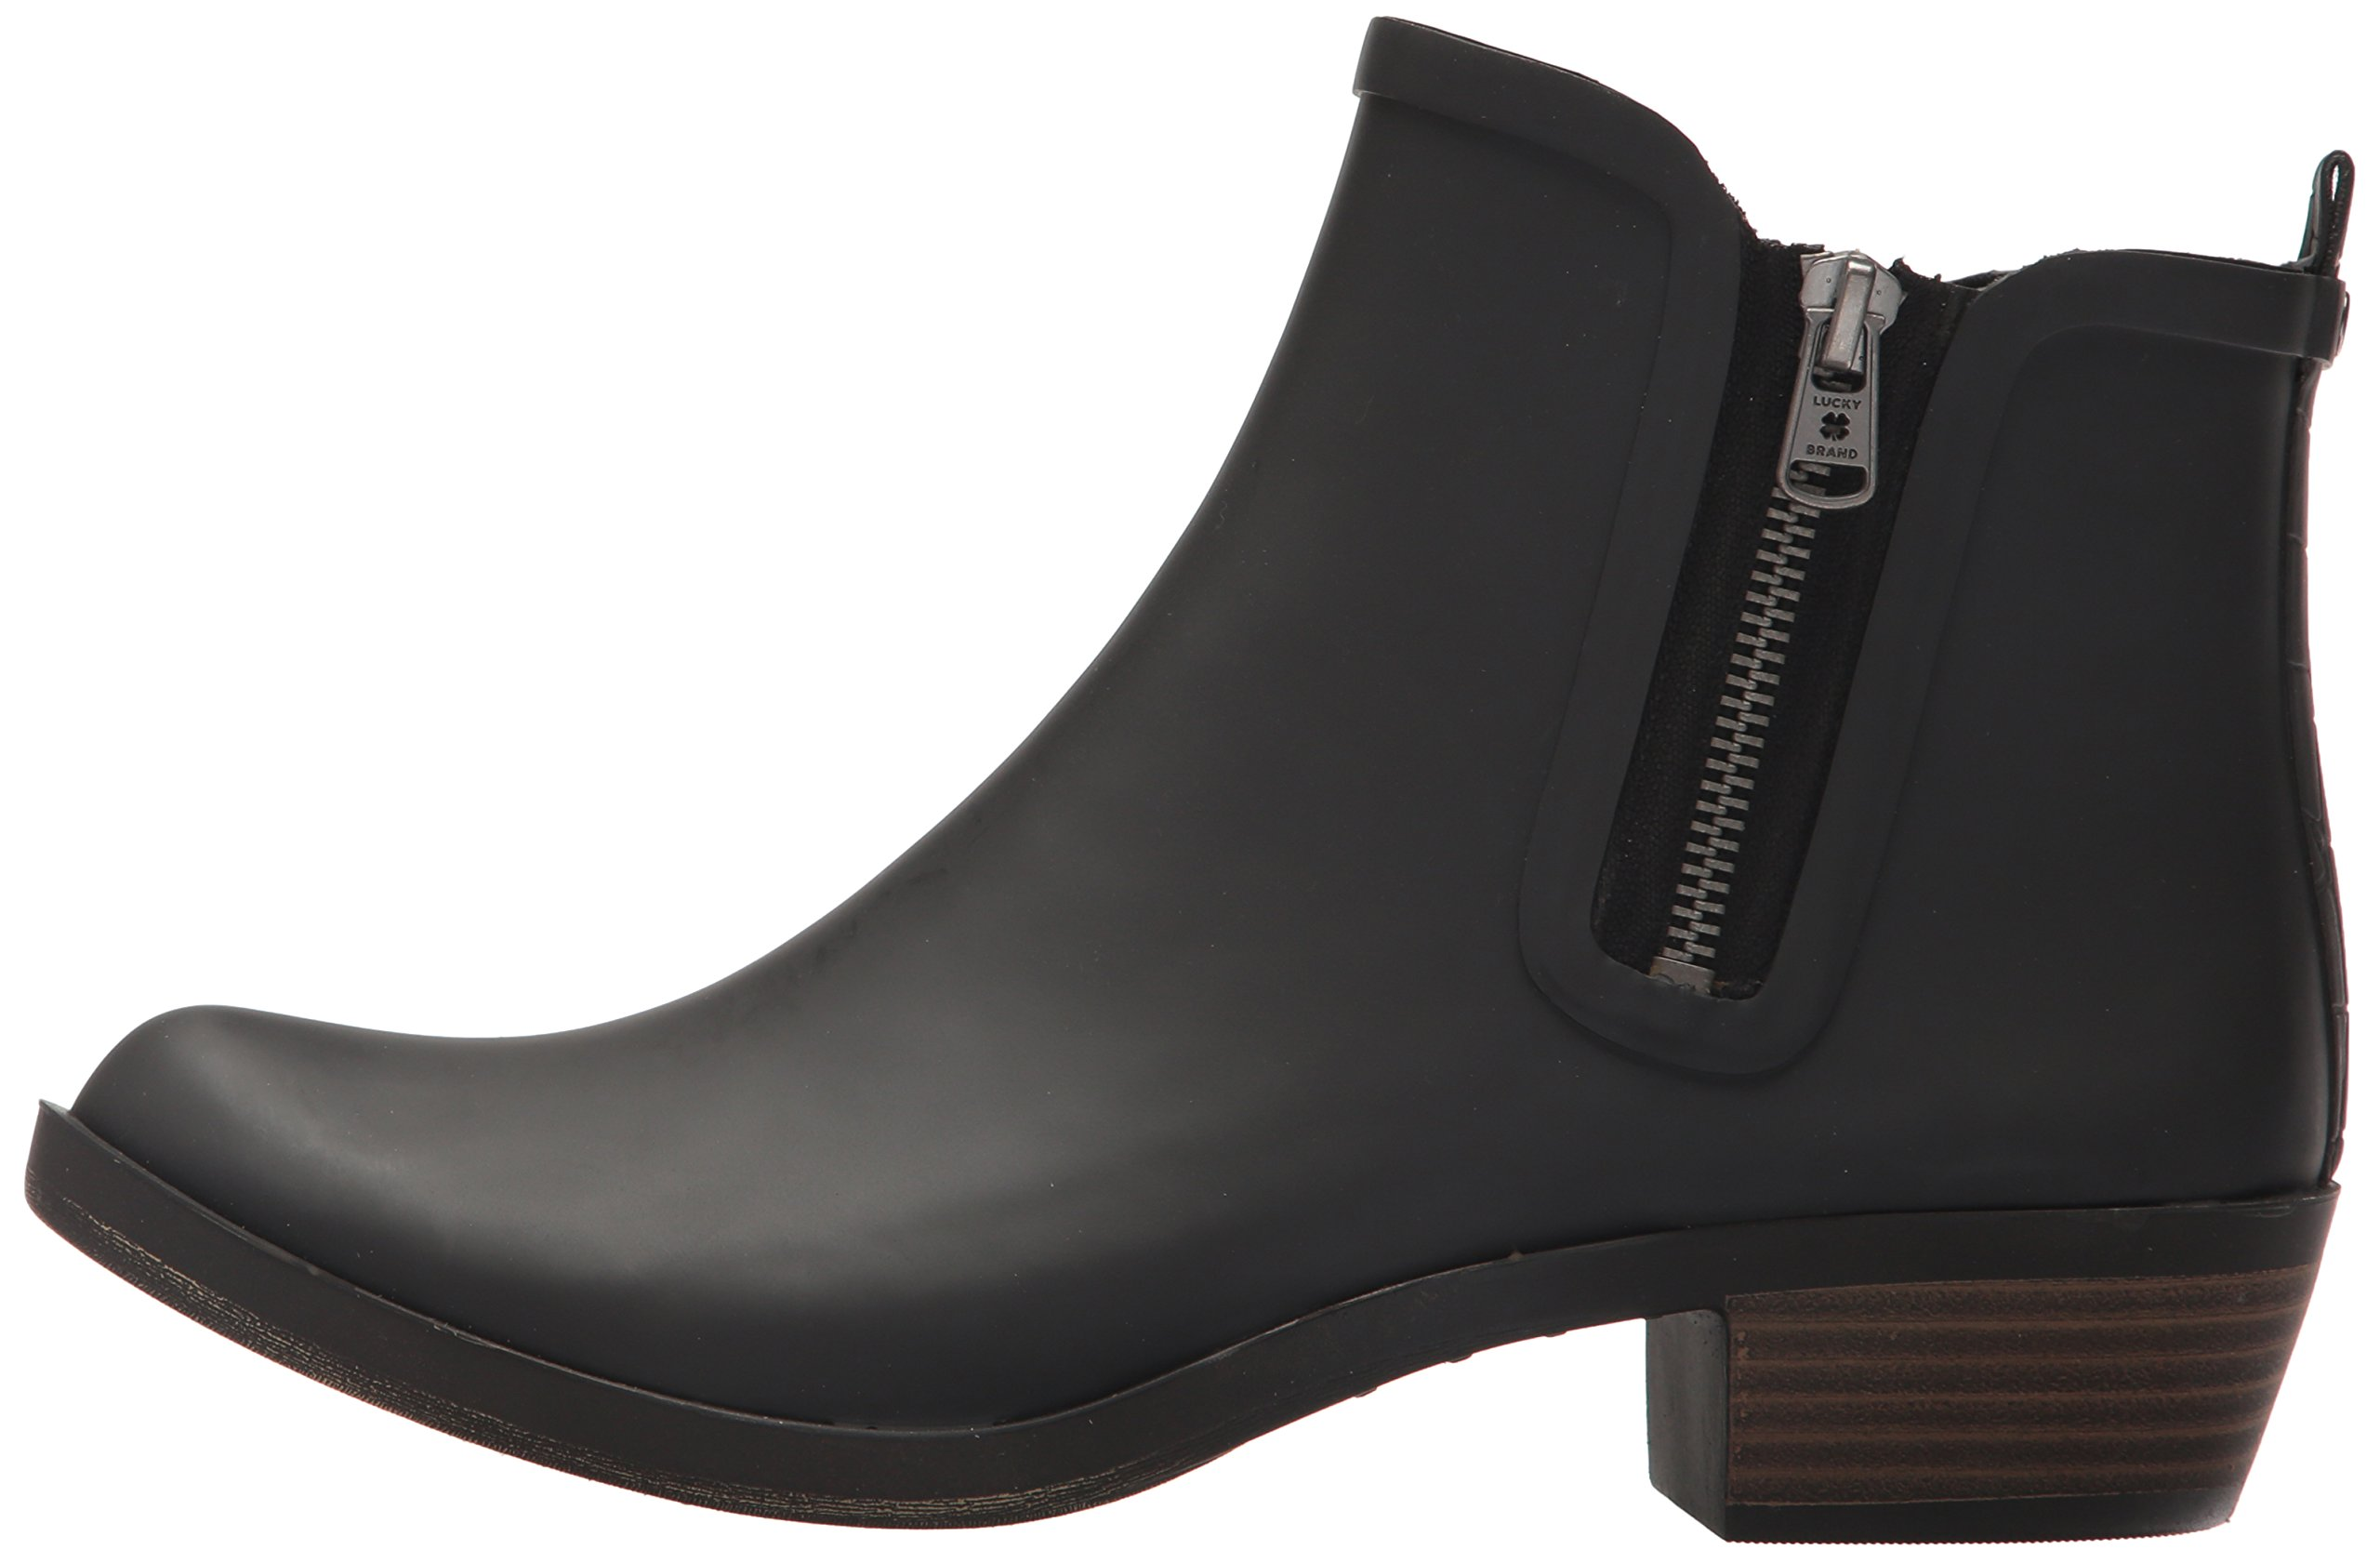 Lucky Brand Women's Baselrain Rain Boot, Black Crocodile, 10 Medium US by Lucky Brand (Image #5)